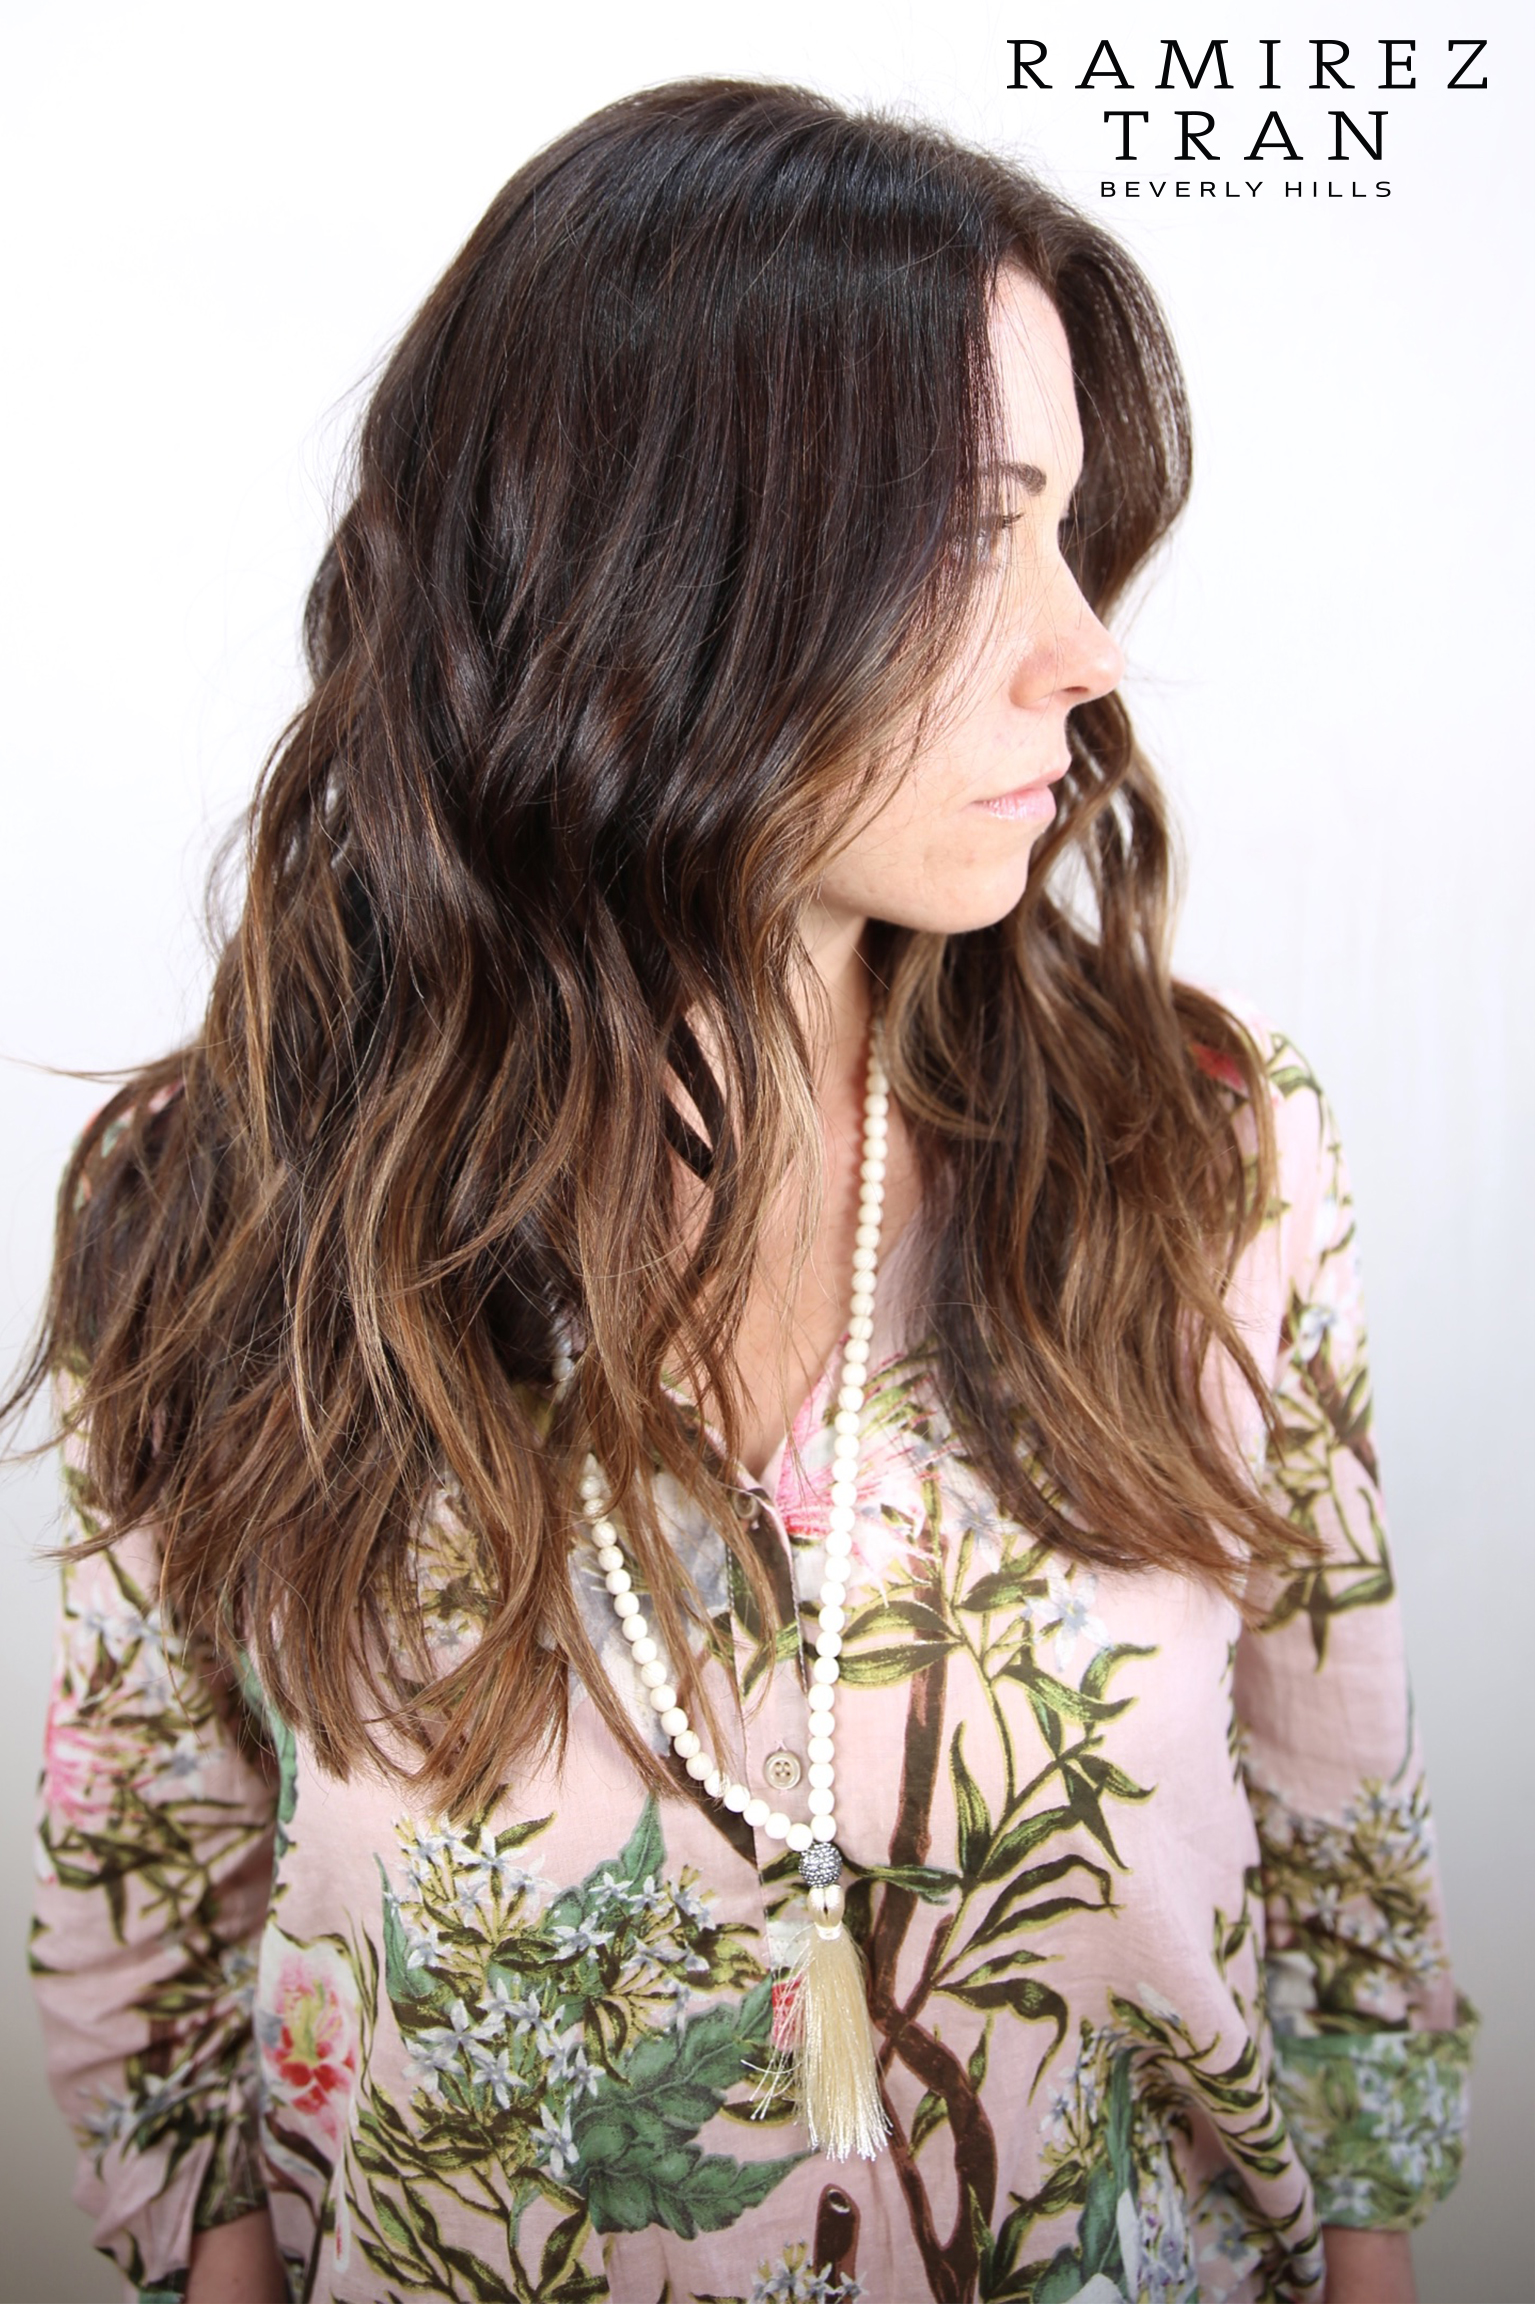 Co color by number girls - Hair Color By Johnny Ramirez Johnnyramirez1 Cut Style By Anh Co Tran Anhcotran Ramirez Tran Salon 310 724 8167 Info Ramireztran Com